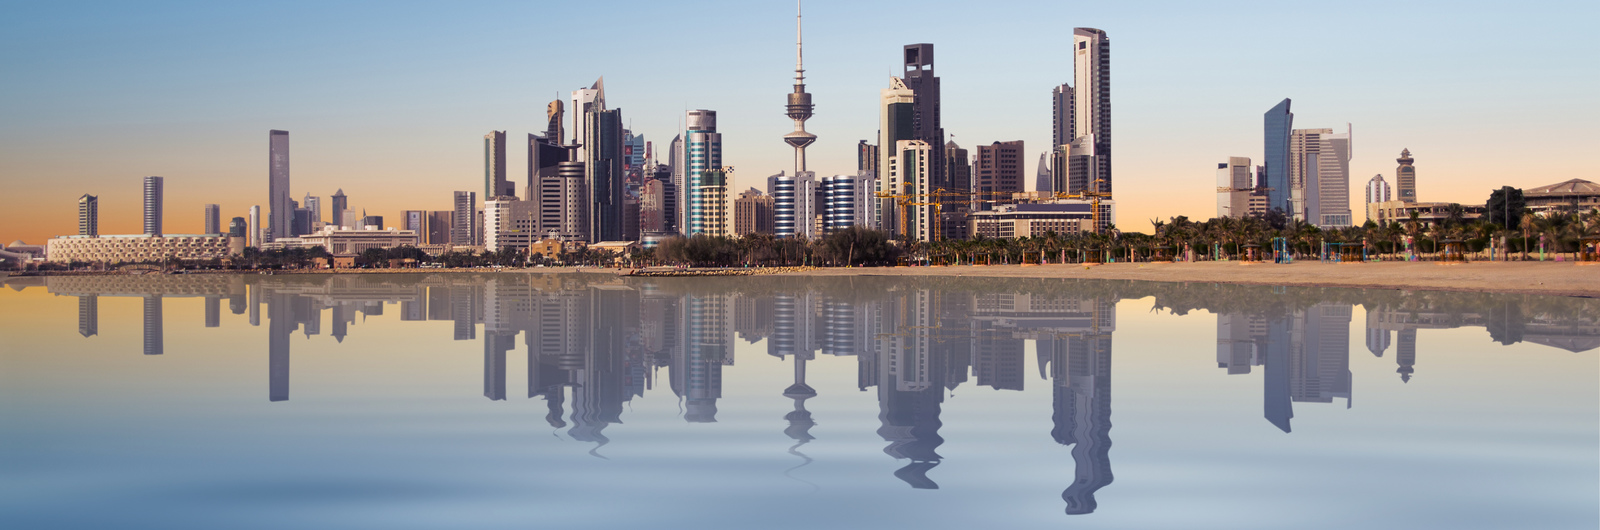 kuwait city city header